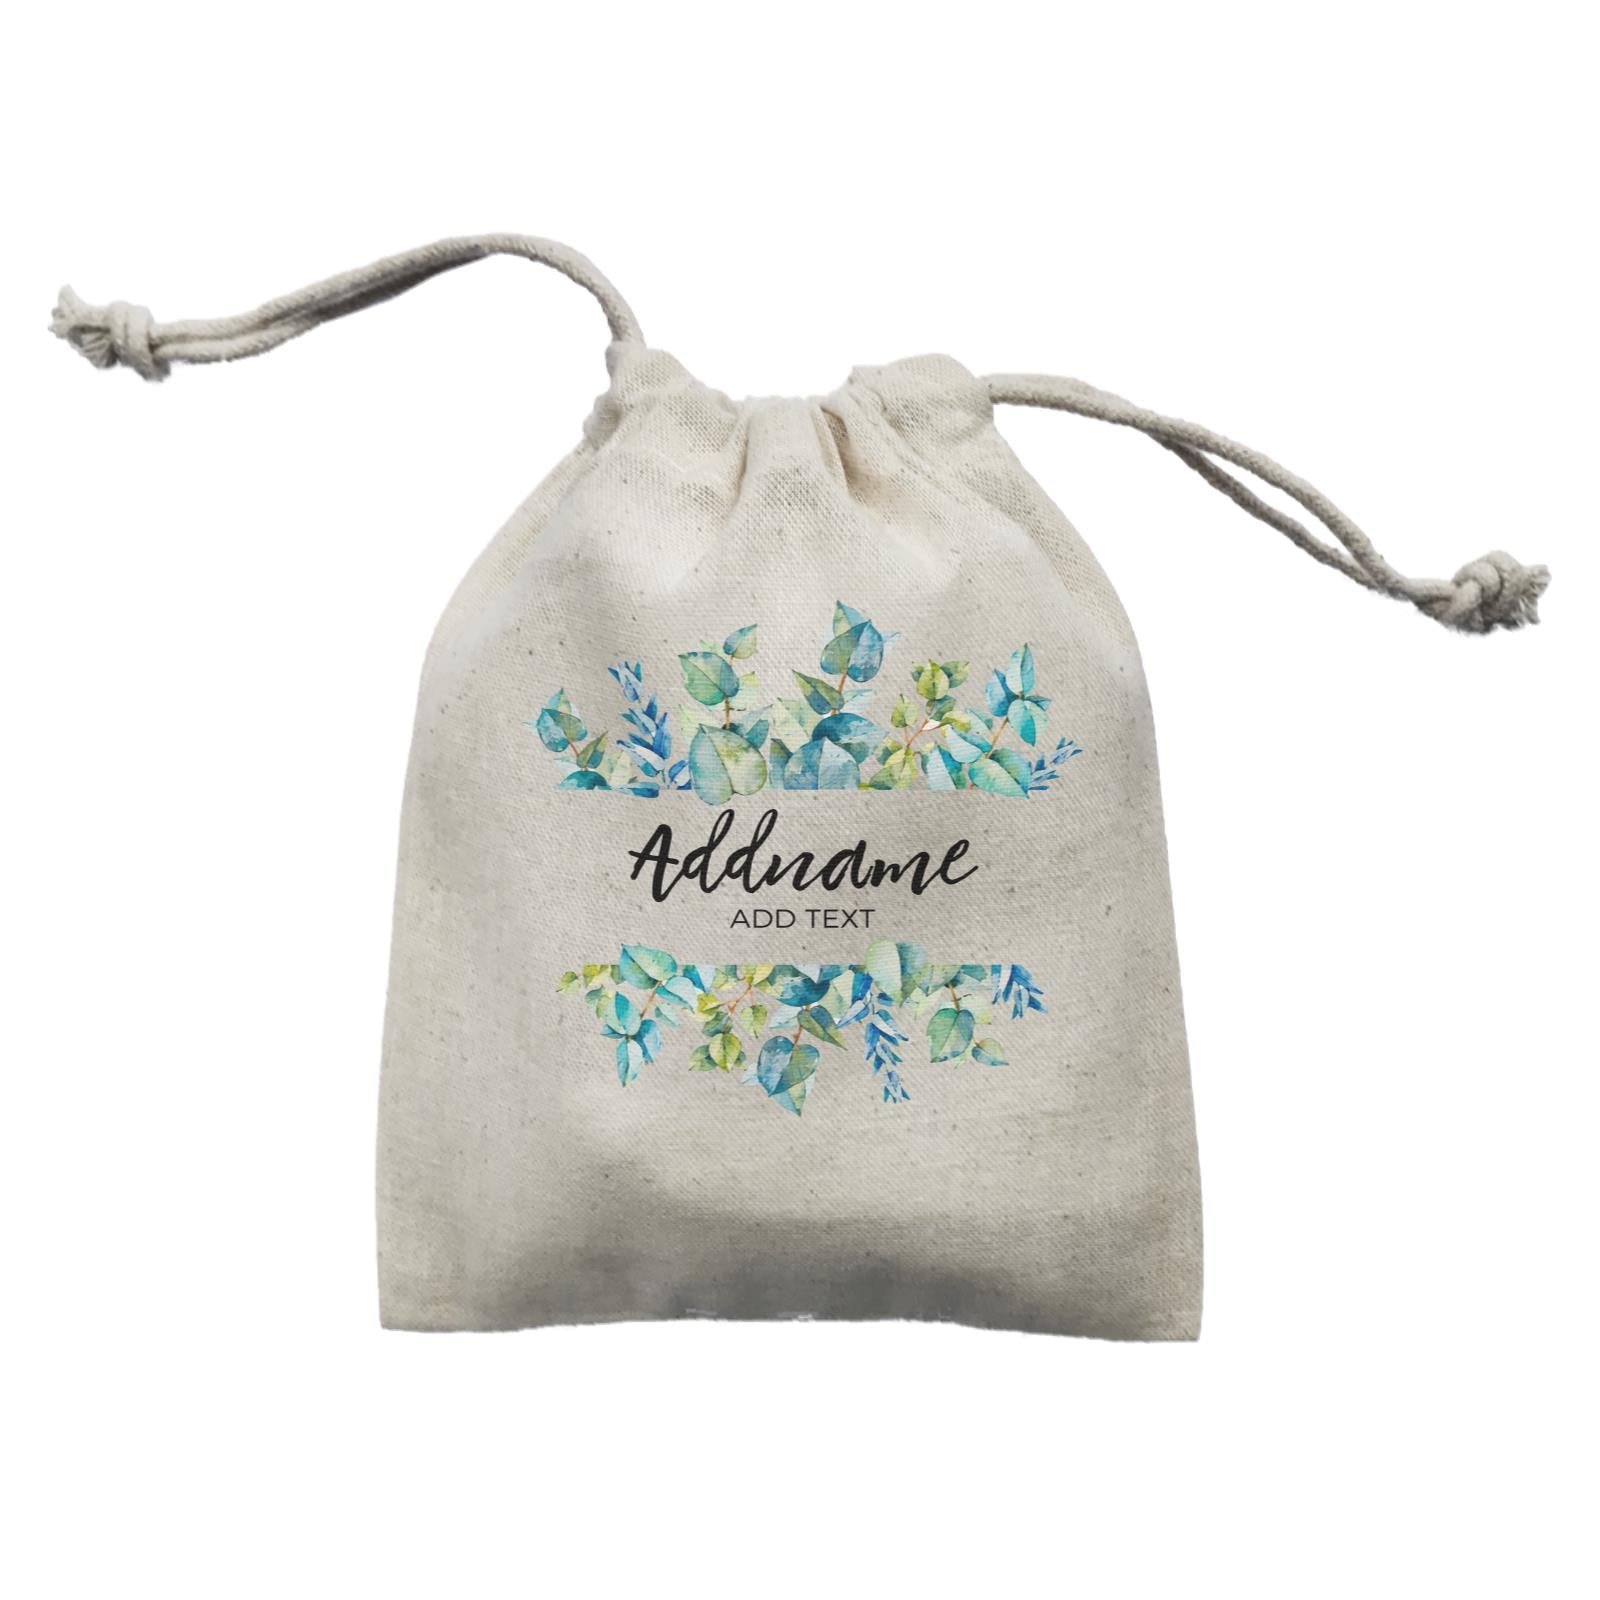 Add Your Own Text Teacher Blue Leaves Box Addname And Add Text Mini Pouch